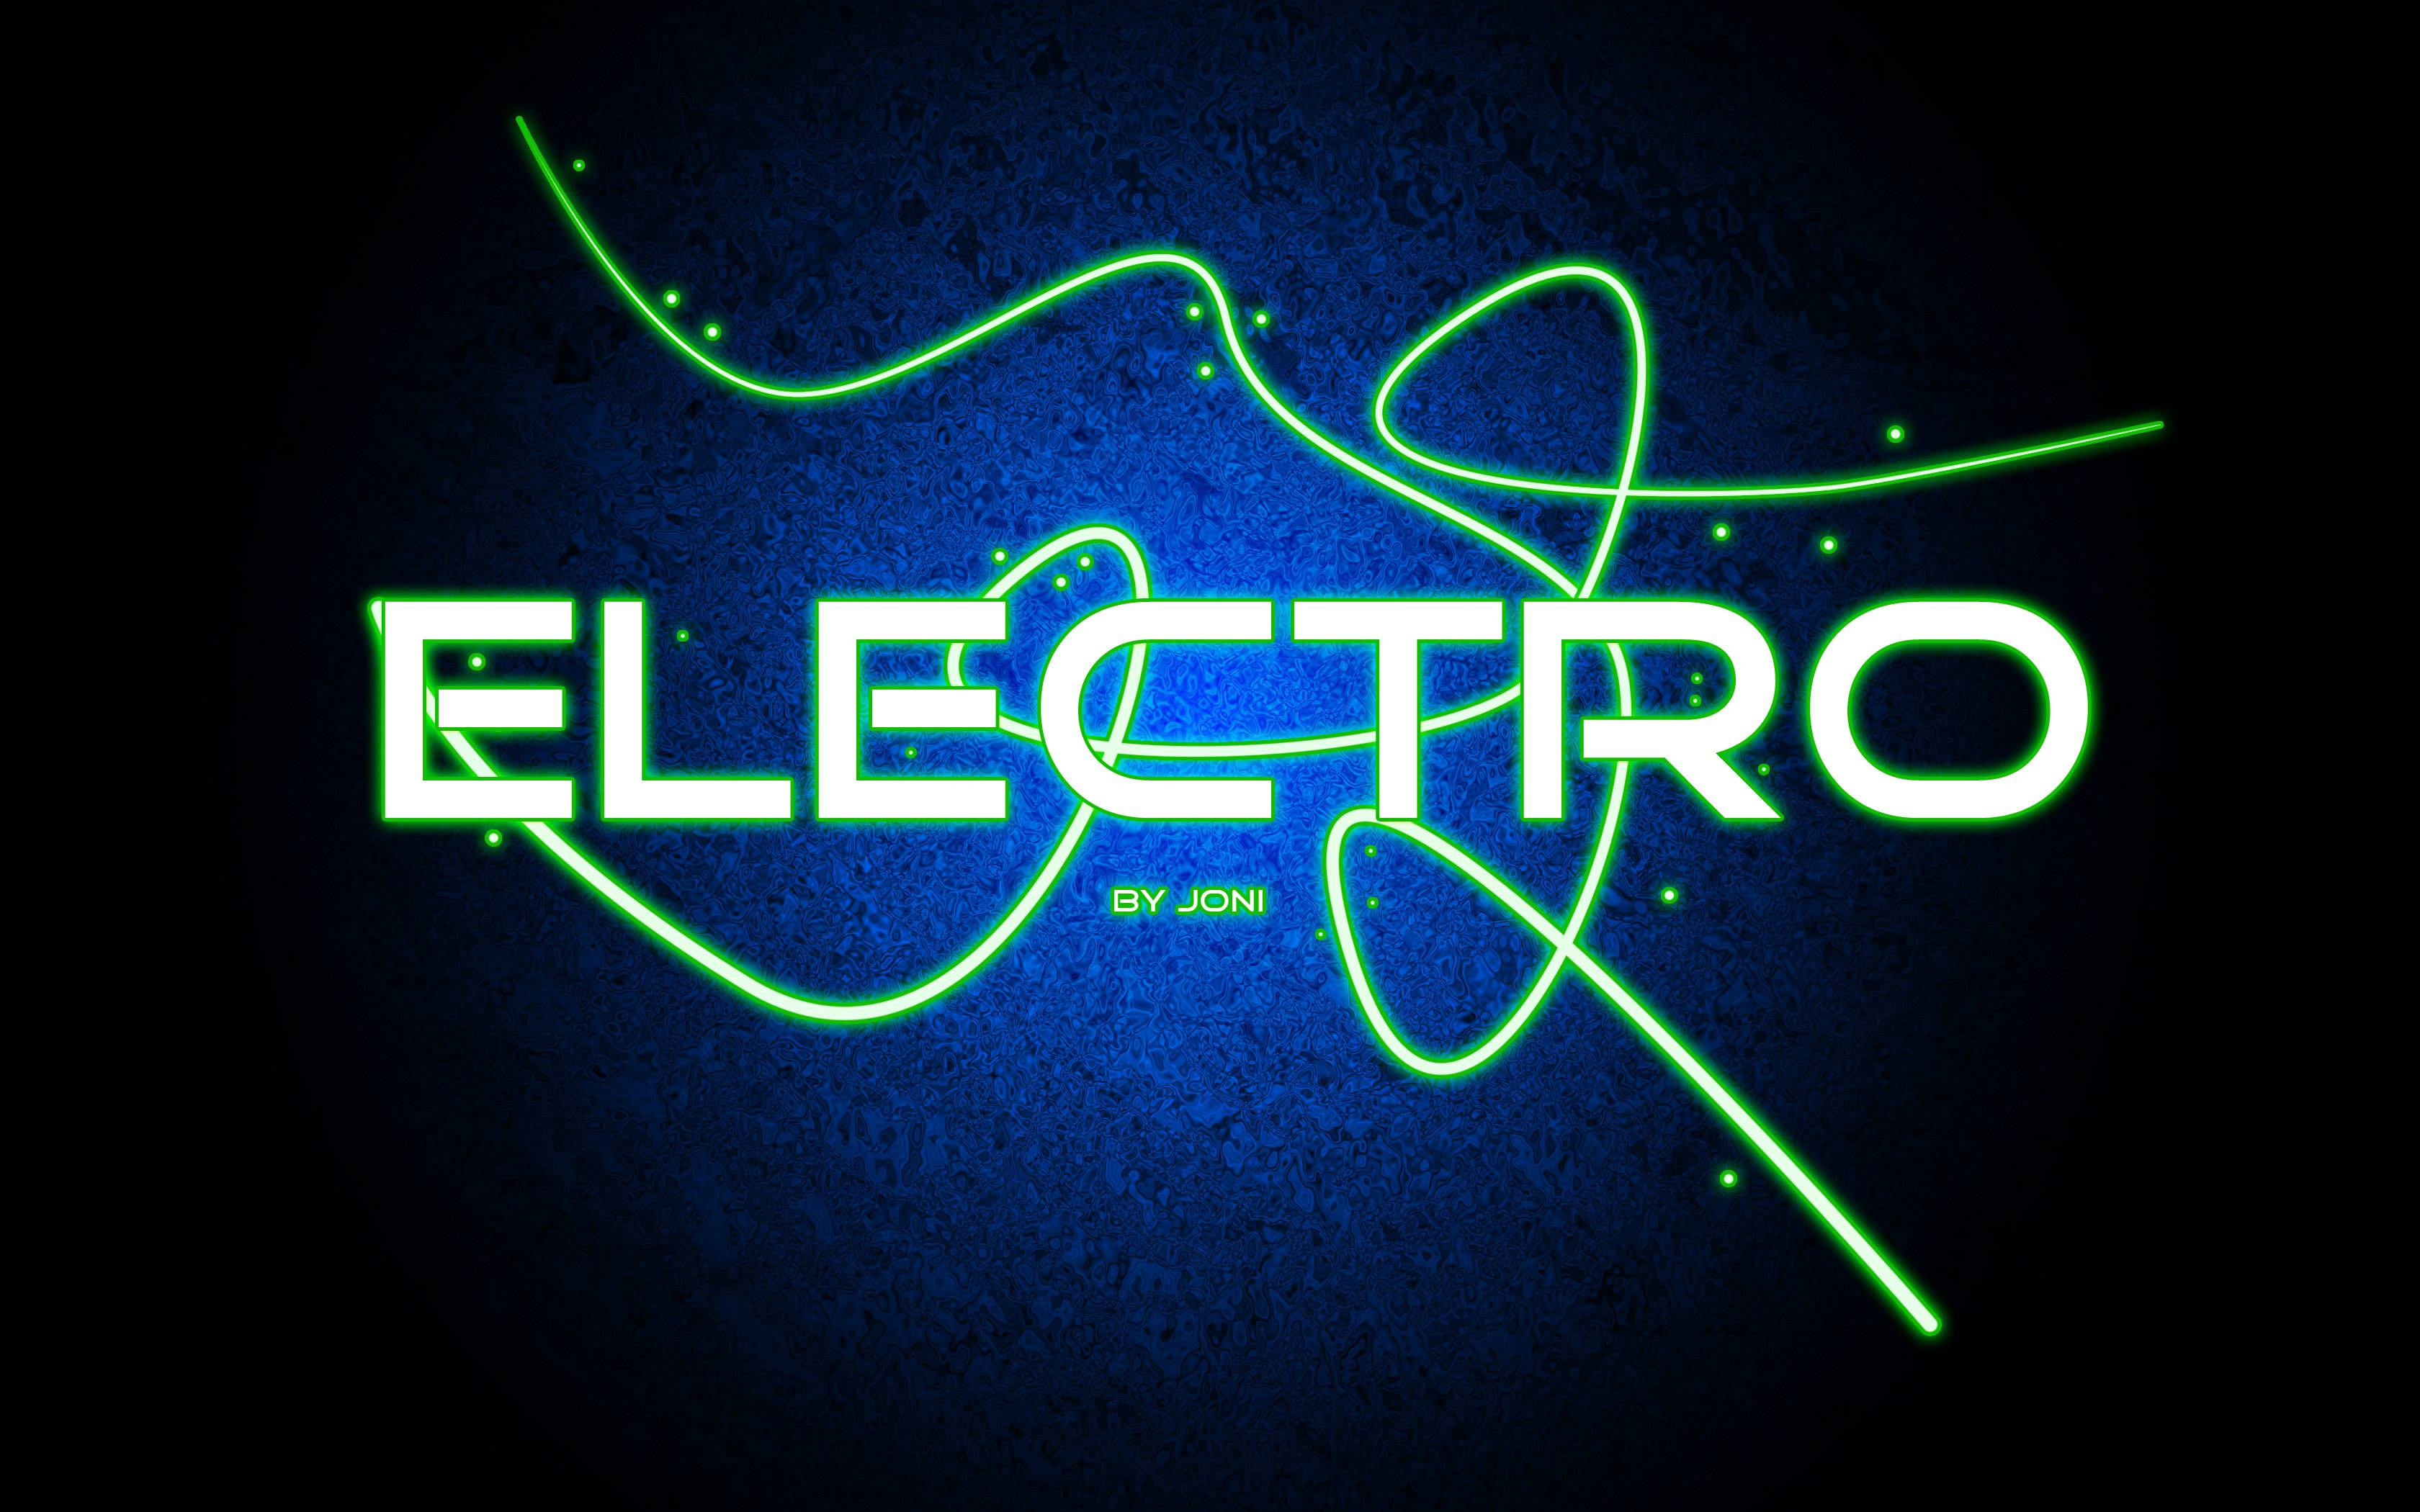 Electro House Music Wallpapers Hd Desktop 10 HD Wallpapers | aladdino.